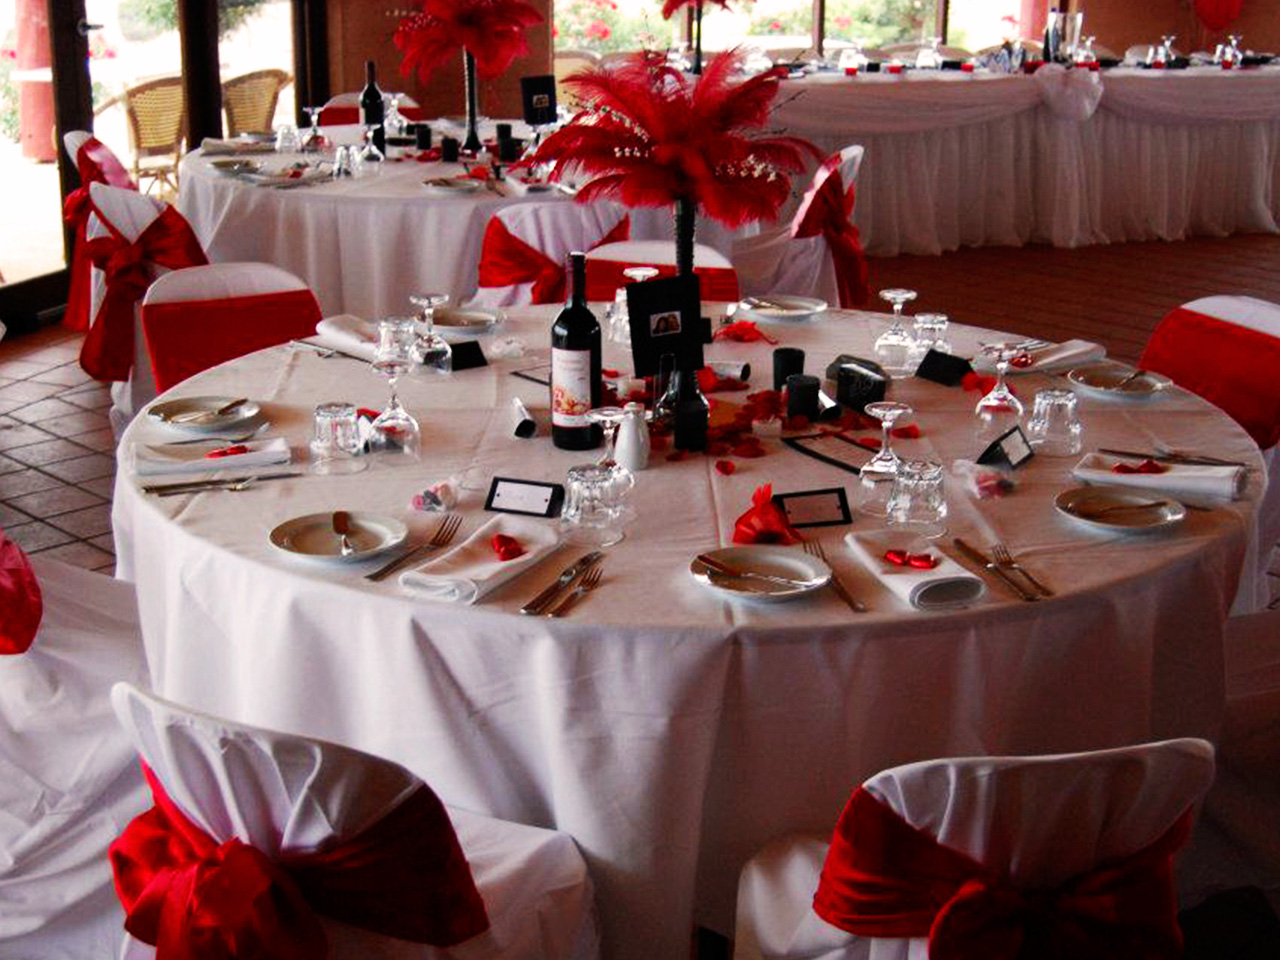 Chairs And TablesIn Banquet Style With White And Red Theme